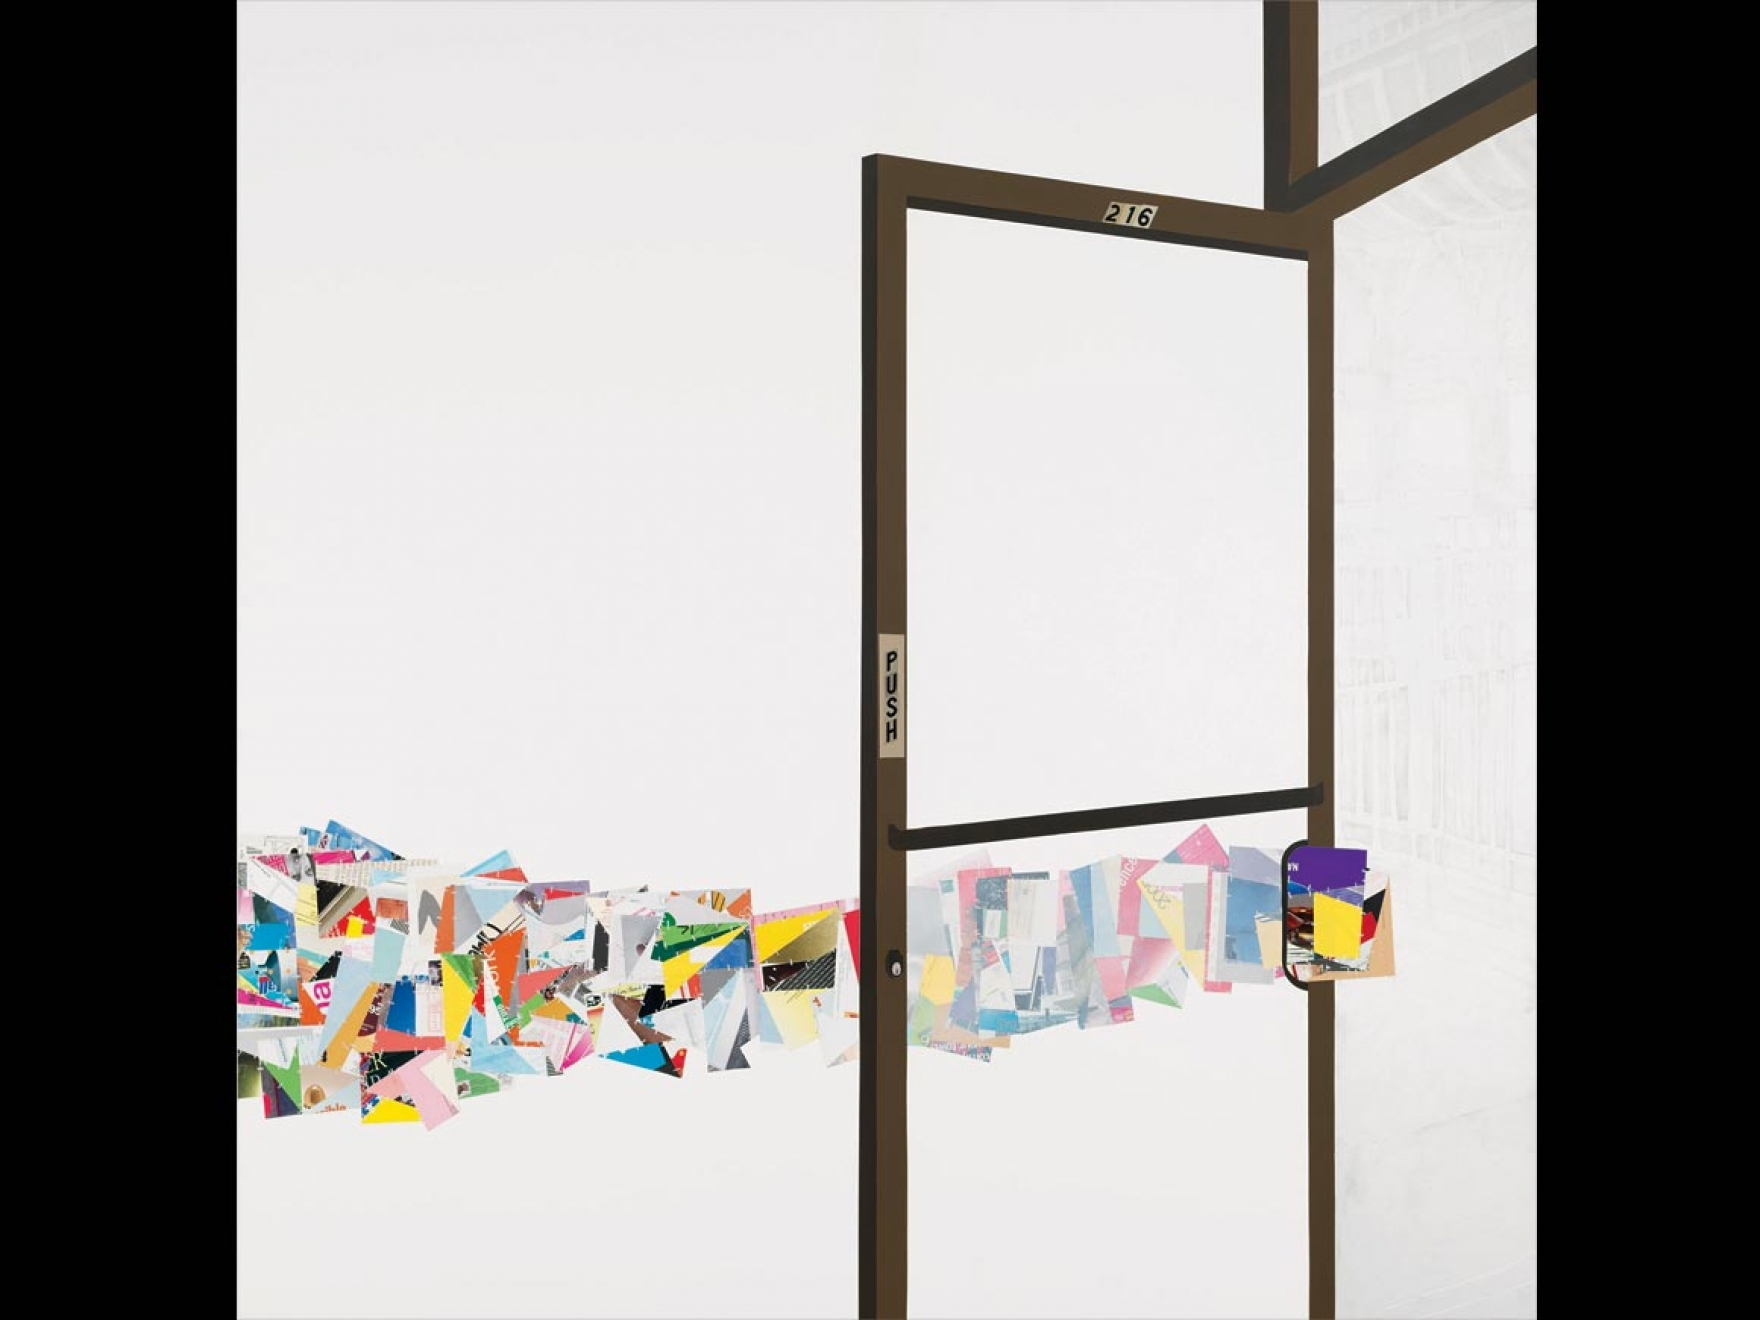 Mixed media collage of colorful squares being pushed out of a door